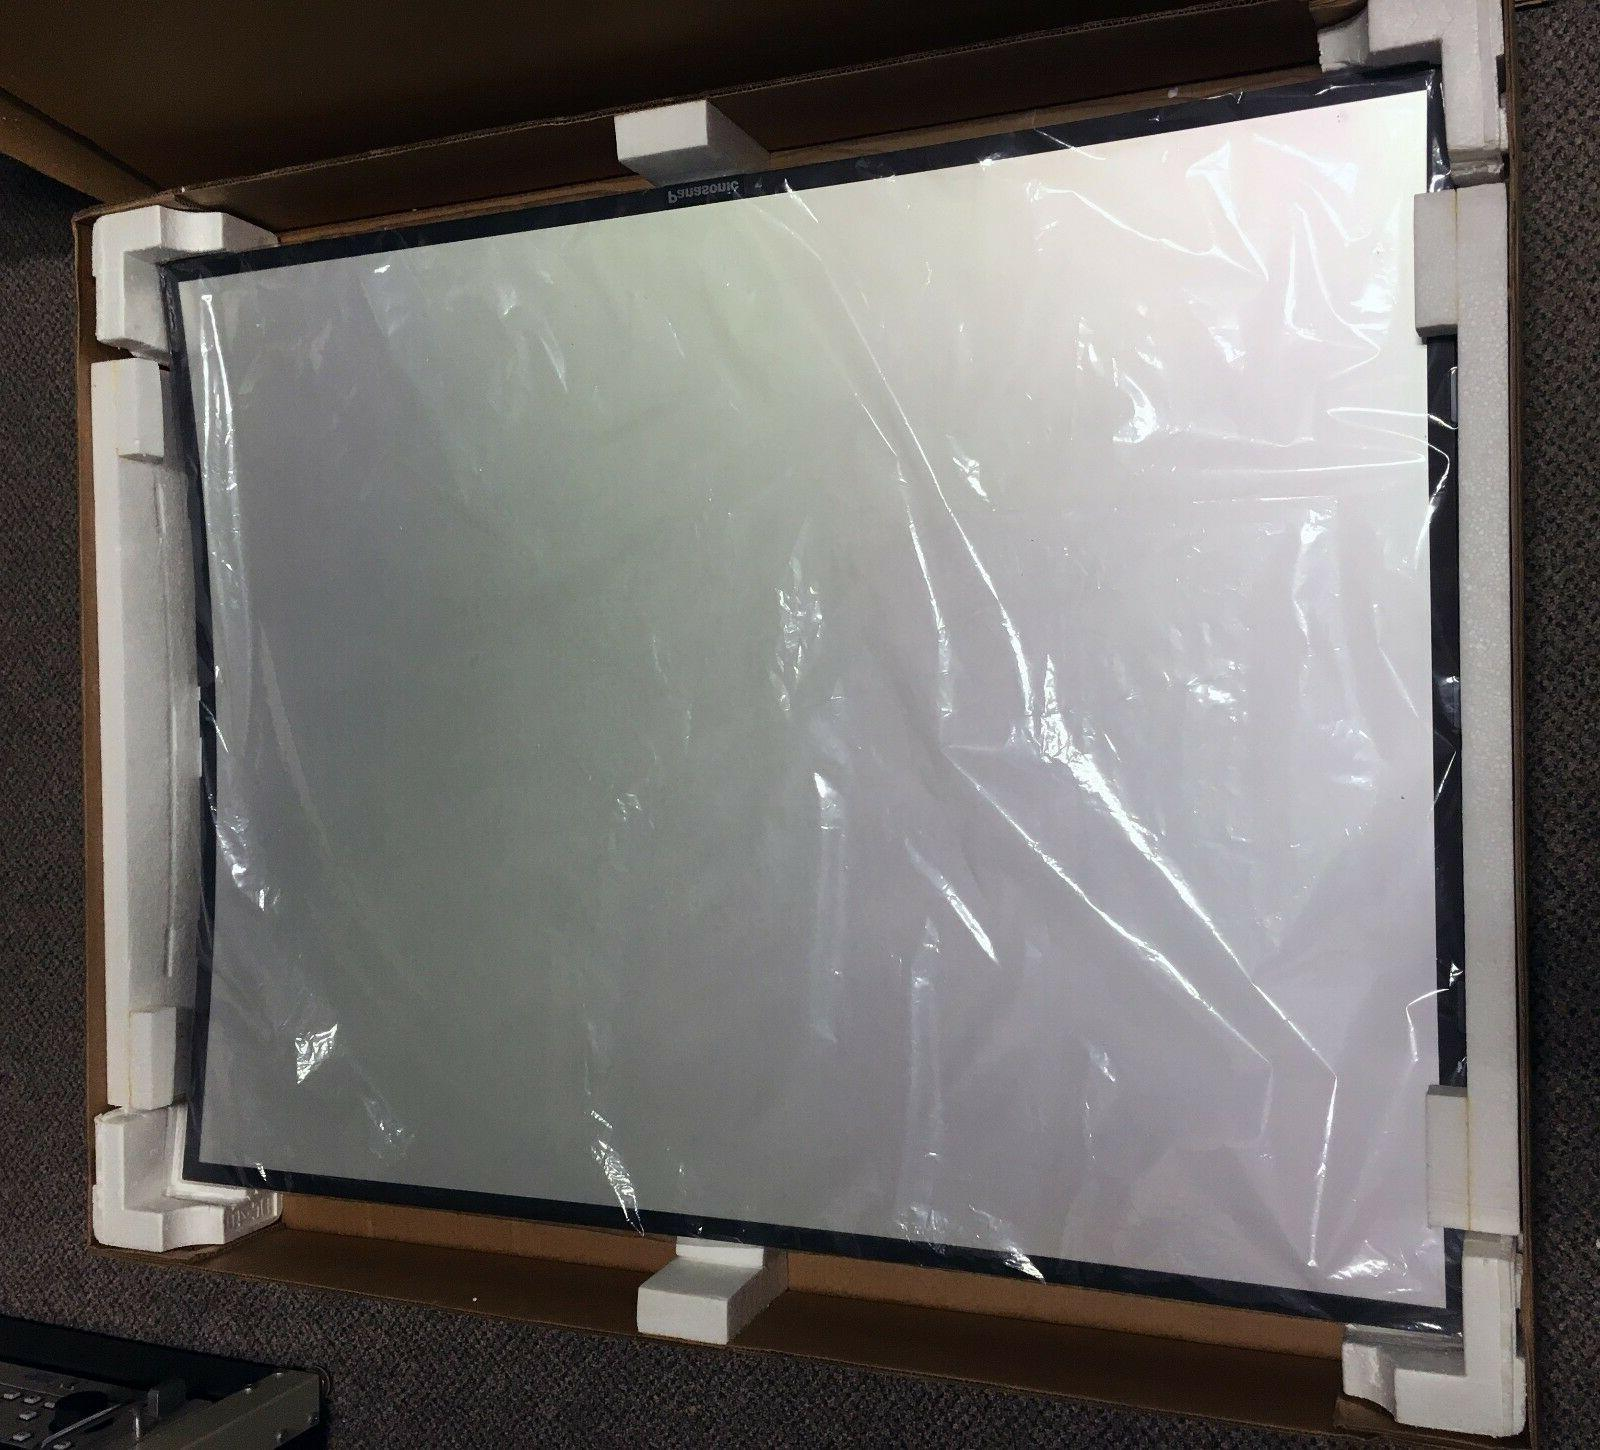 curved projection screen 60 inches diagonal